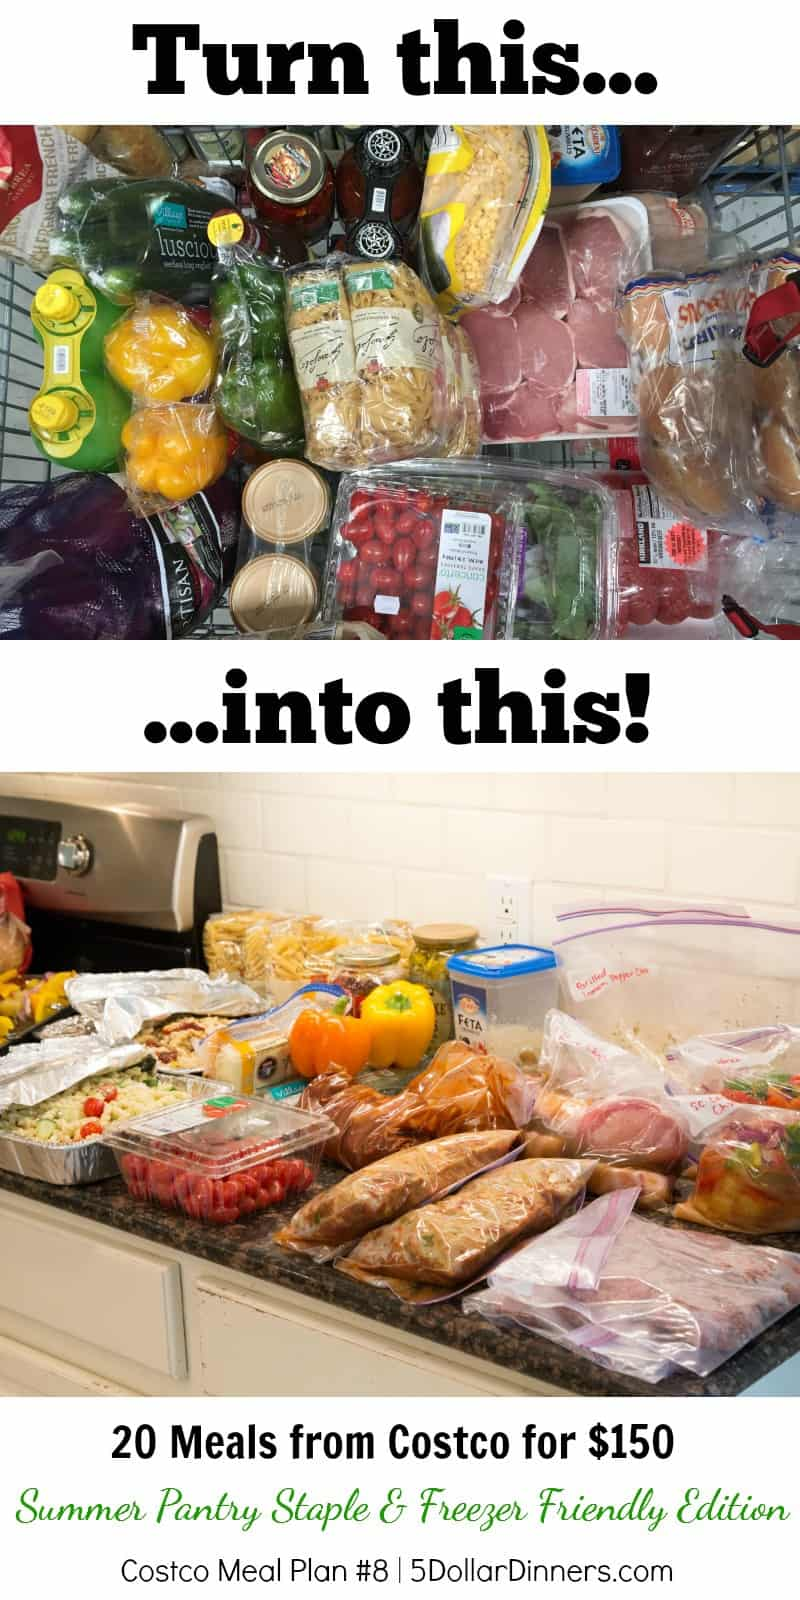 Get 20 Meals from Costco for $150 – Summer Pantry Staple & Freezer Friendly (Plan #8)!!!!